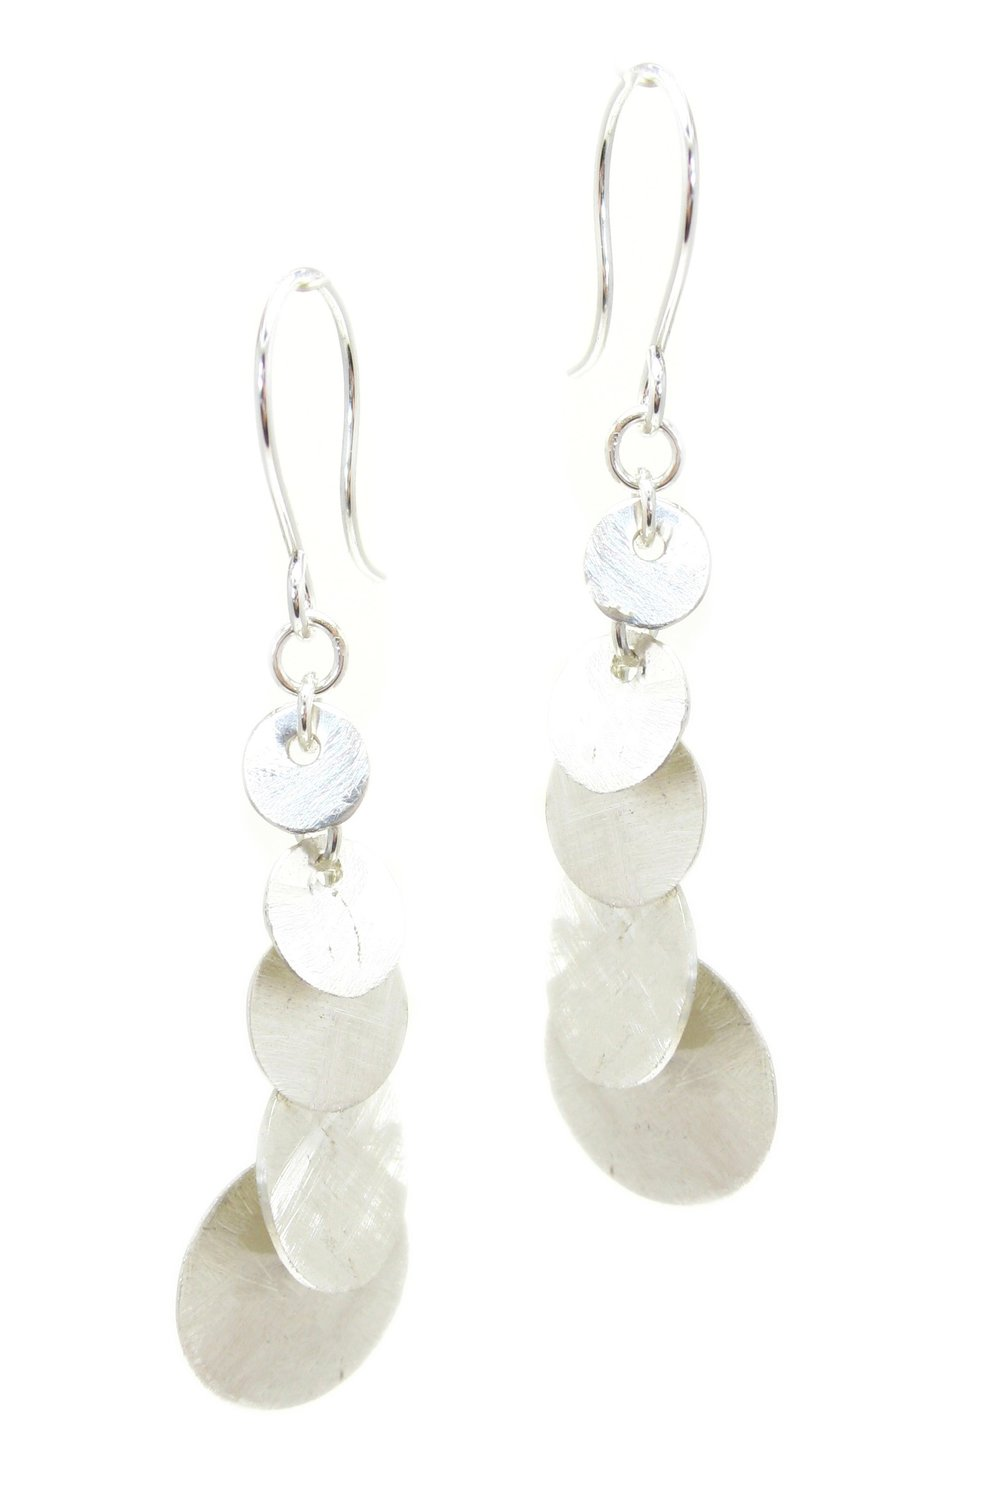 Workshop+Dangle+Earrings+-+2+-+SharonZJewelry.jpg